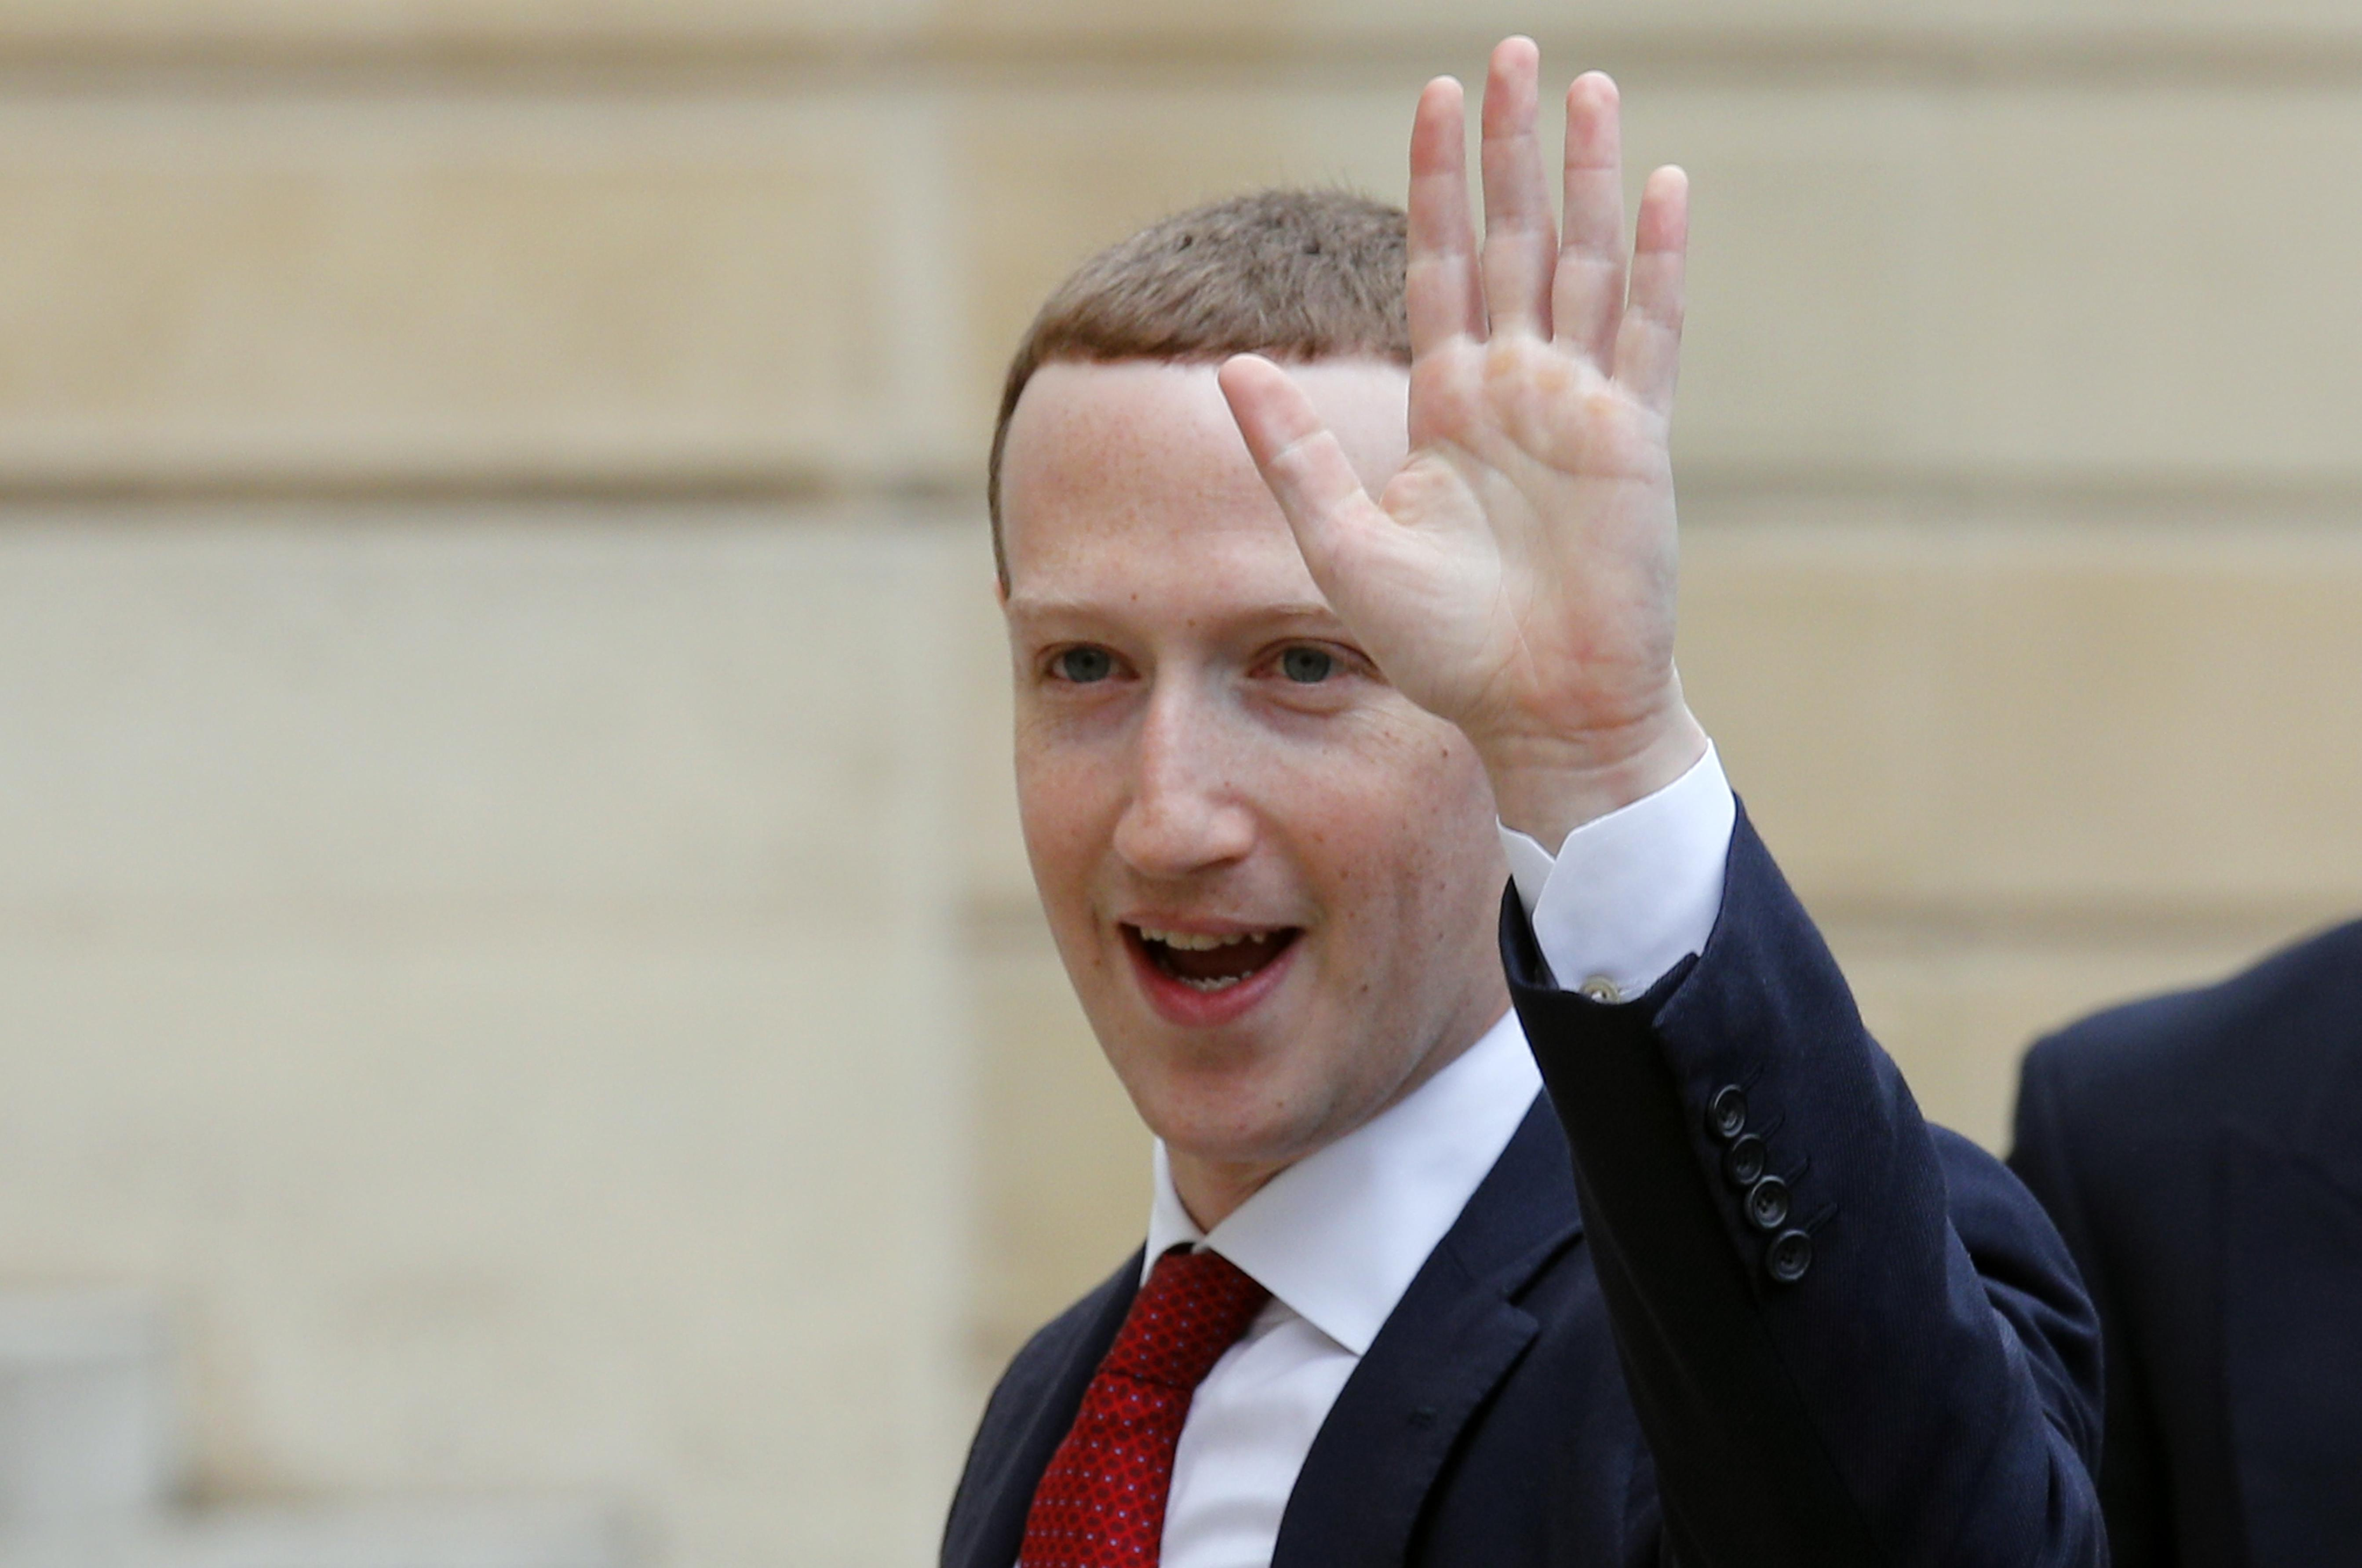 New French rules for Facebook? Zuckerberg likes the idea | The